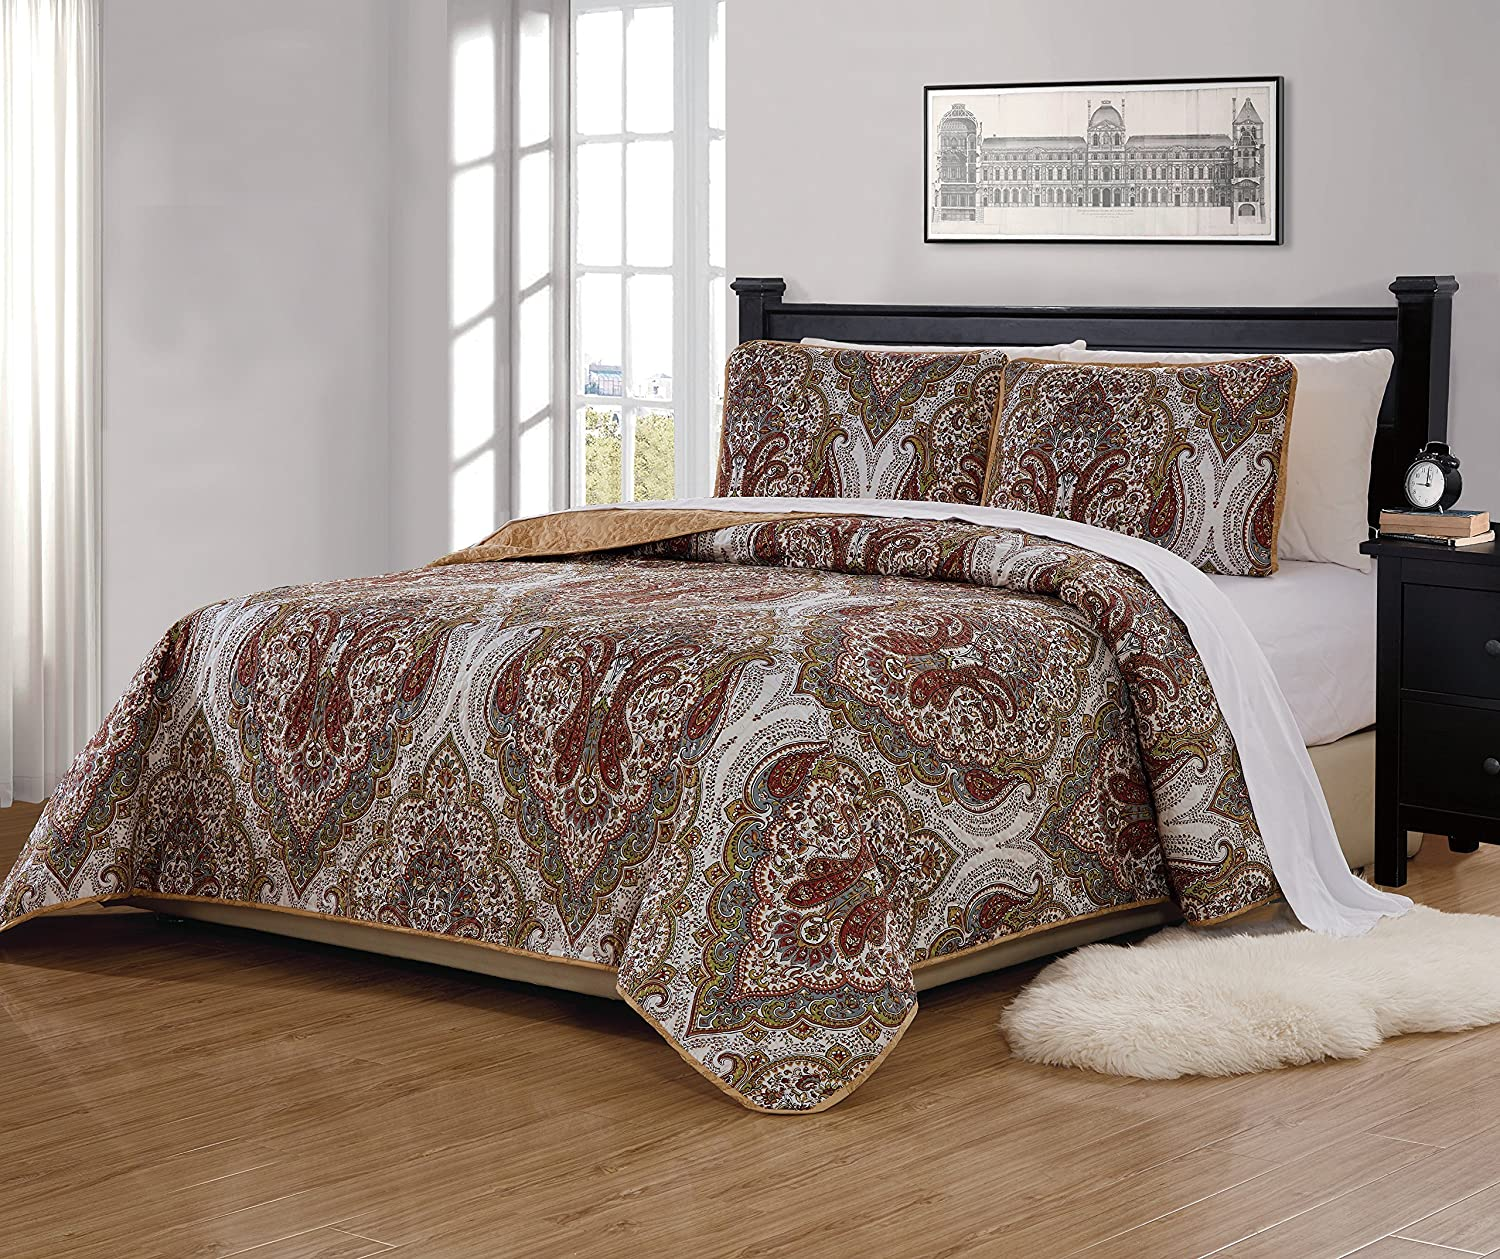 Mk Home 2pc Twin/Twin Extra Long Bedspread Quilted Print Floral White Brown Green Reversible Taupe Over Size New # Portia